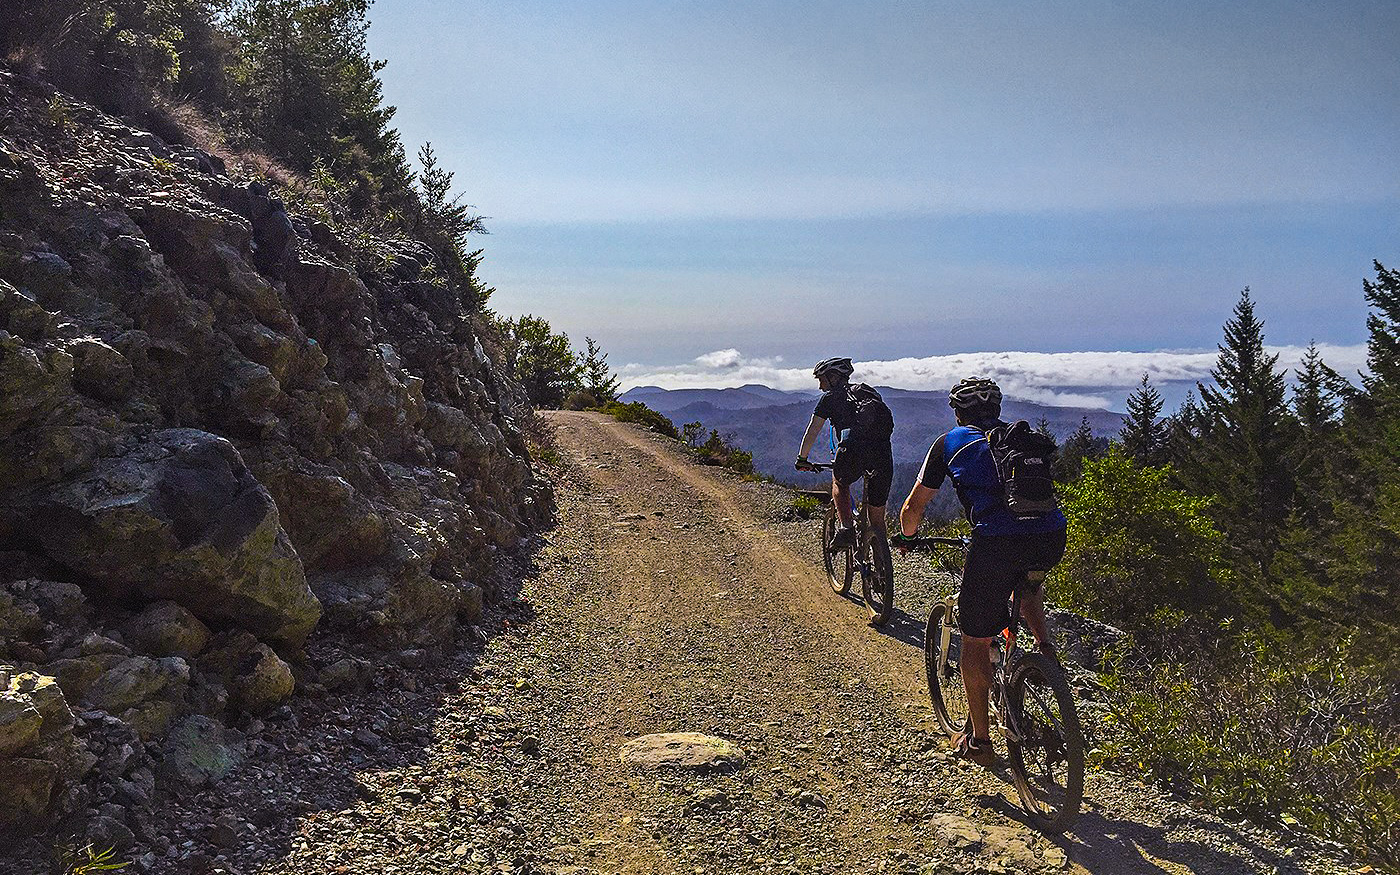 2 mountain bikers riding in high mountain trails with scenic views for Dirt Fondo event